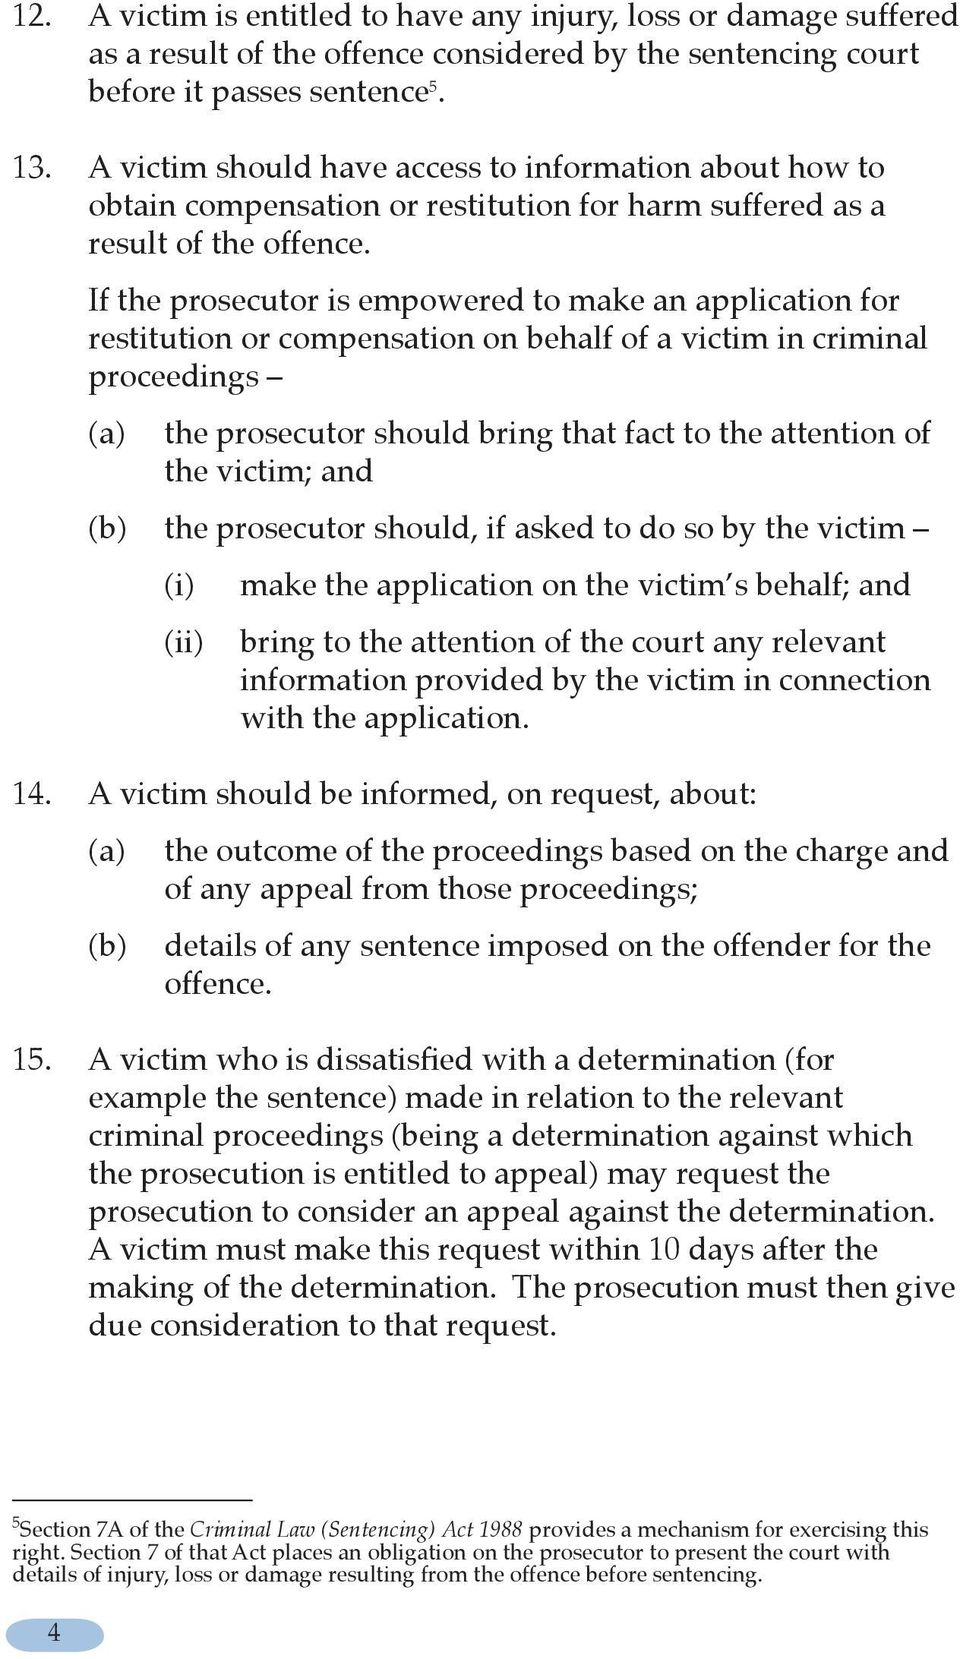 If the prosecutor is empowered to make an application for restitution or compensation on behalf of a victim in criminal proceedings (a) the prosecutor should bring that fact to the attention of the